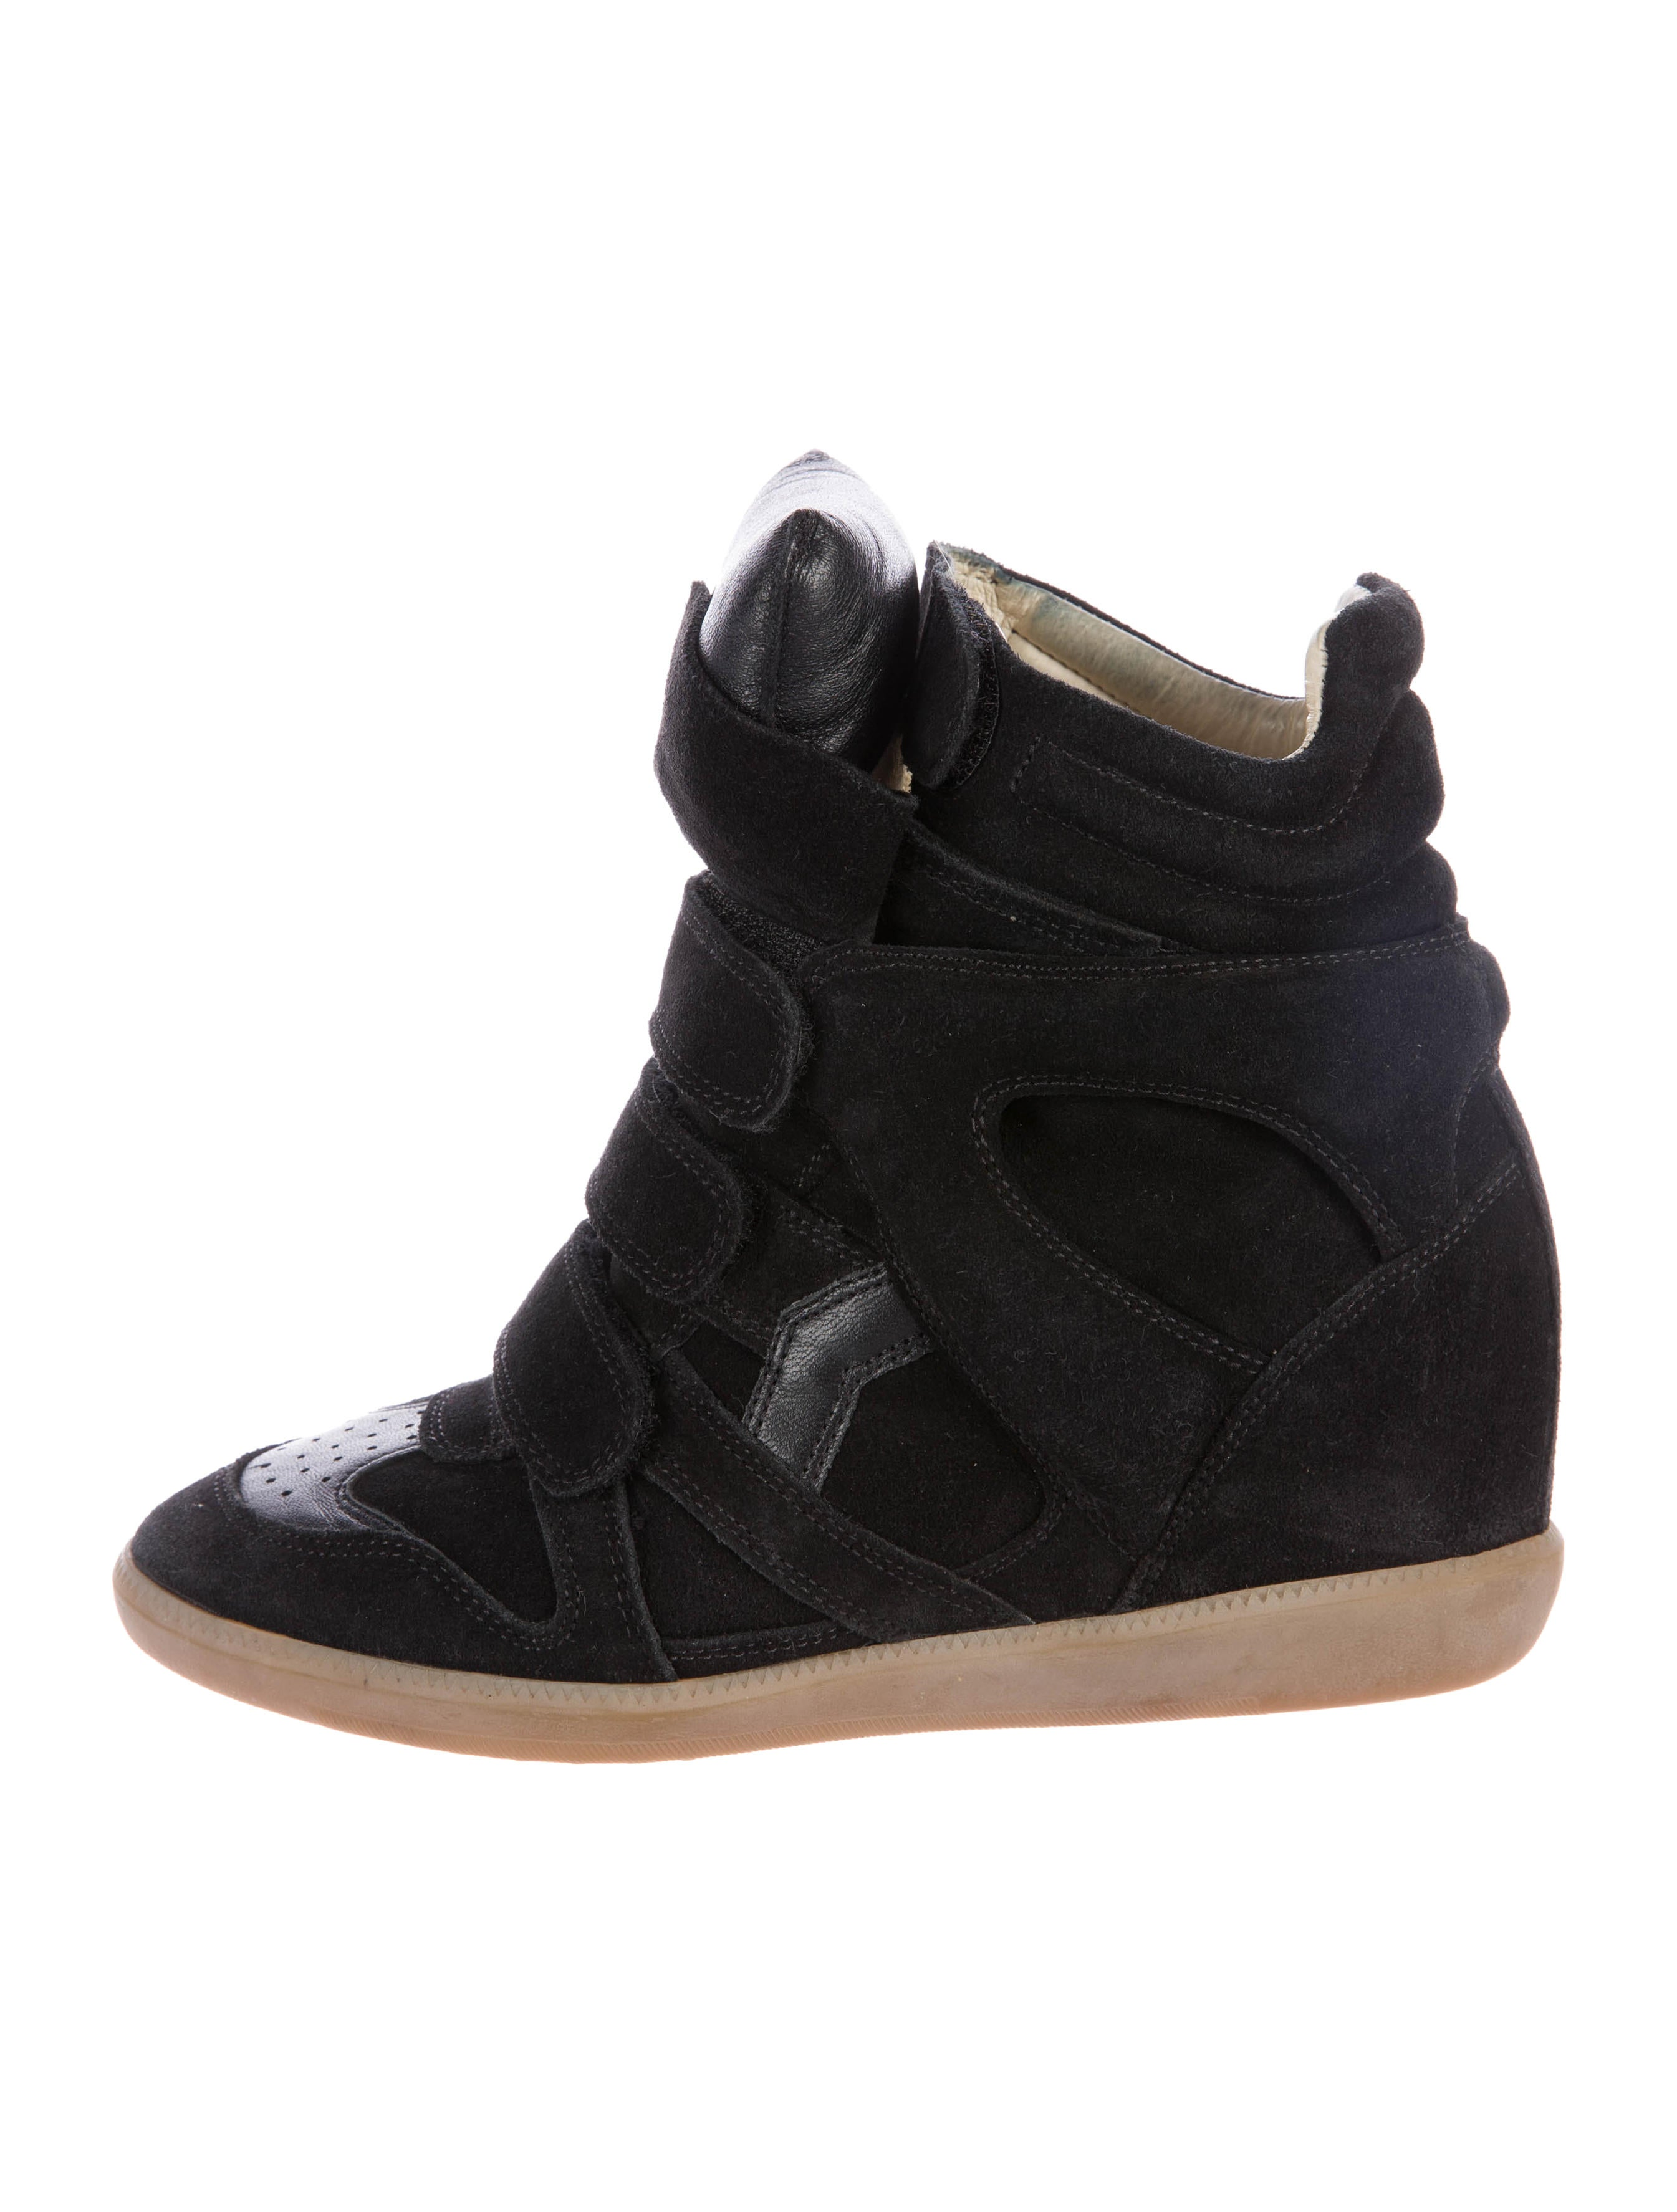 isabel marant beckett wedge sneakers shoes isa42149. Black Bedroom Furniture Sets. Home Design Ideas